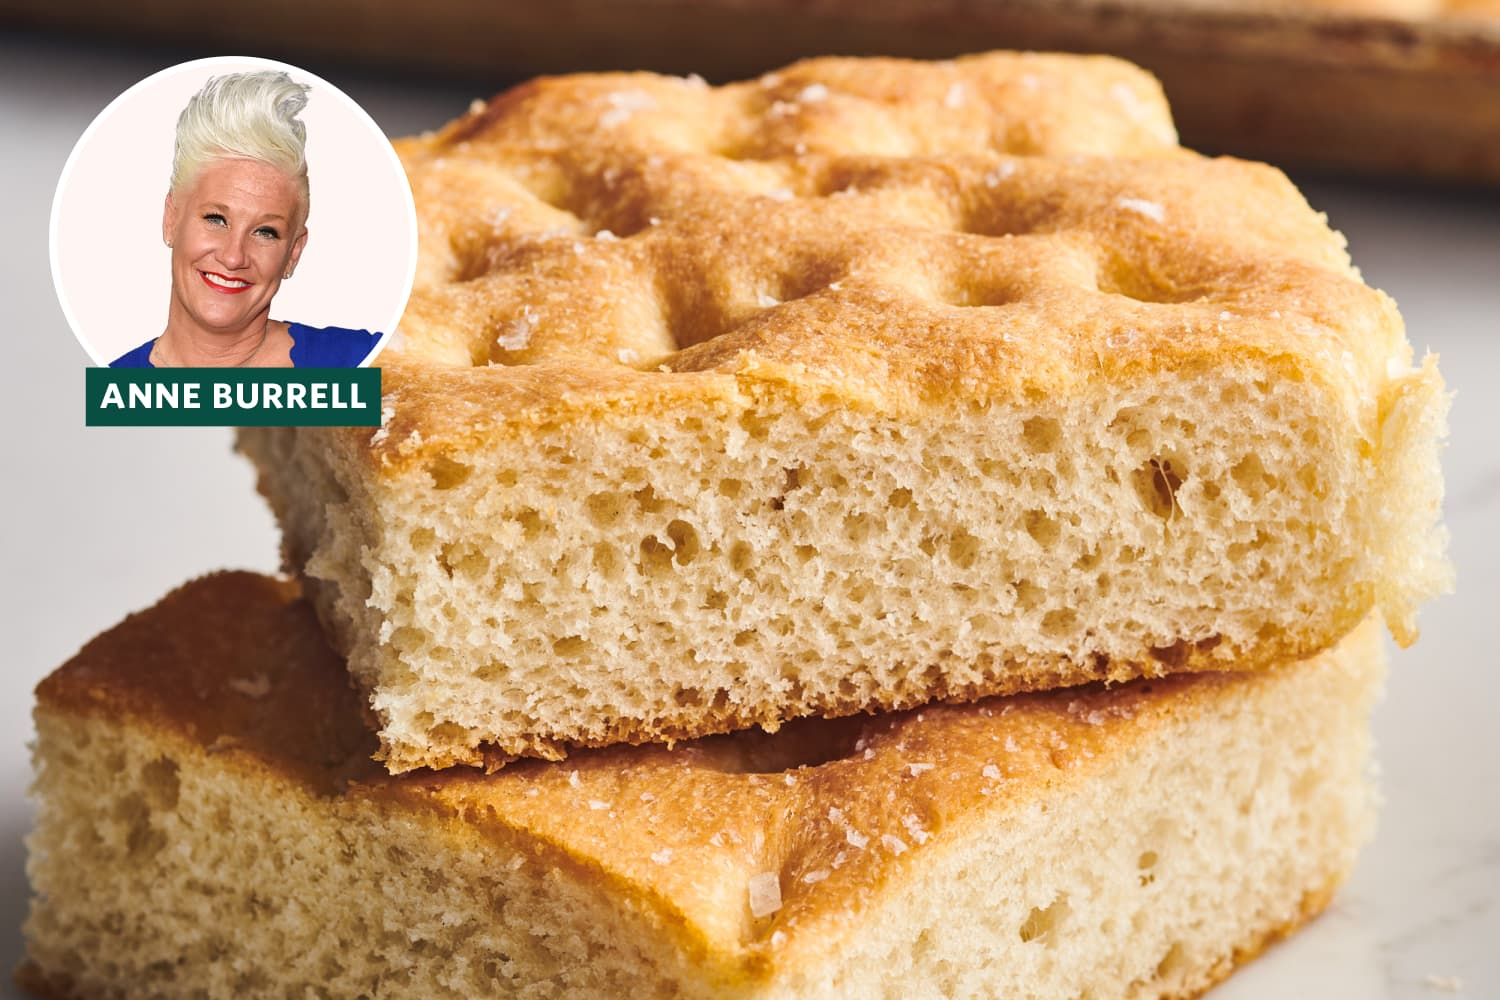 Anne Burrell's Focaccia Has Hundreds of 5-Star Reviews. But Is It Worth the Hype?